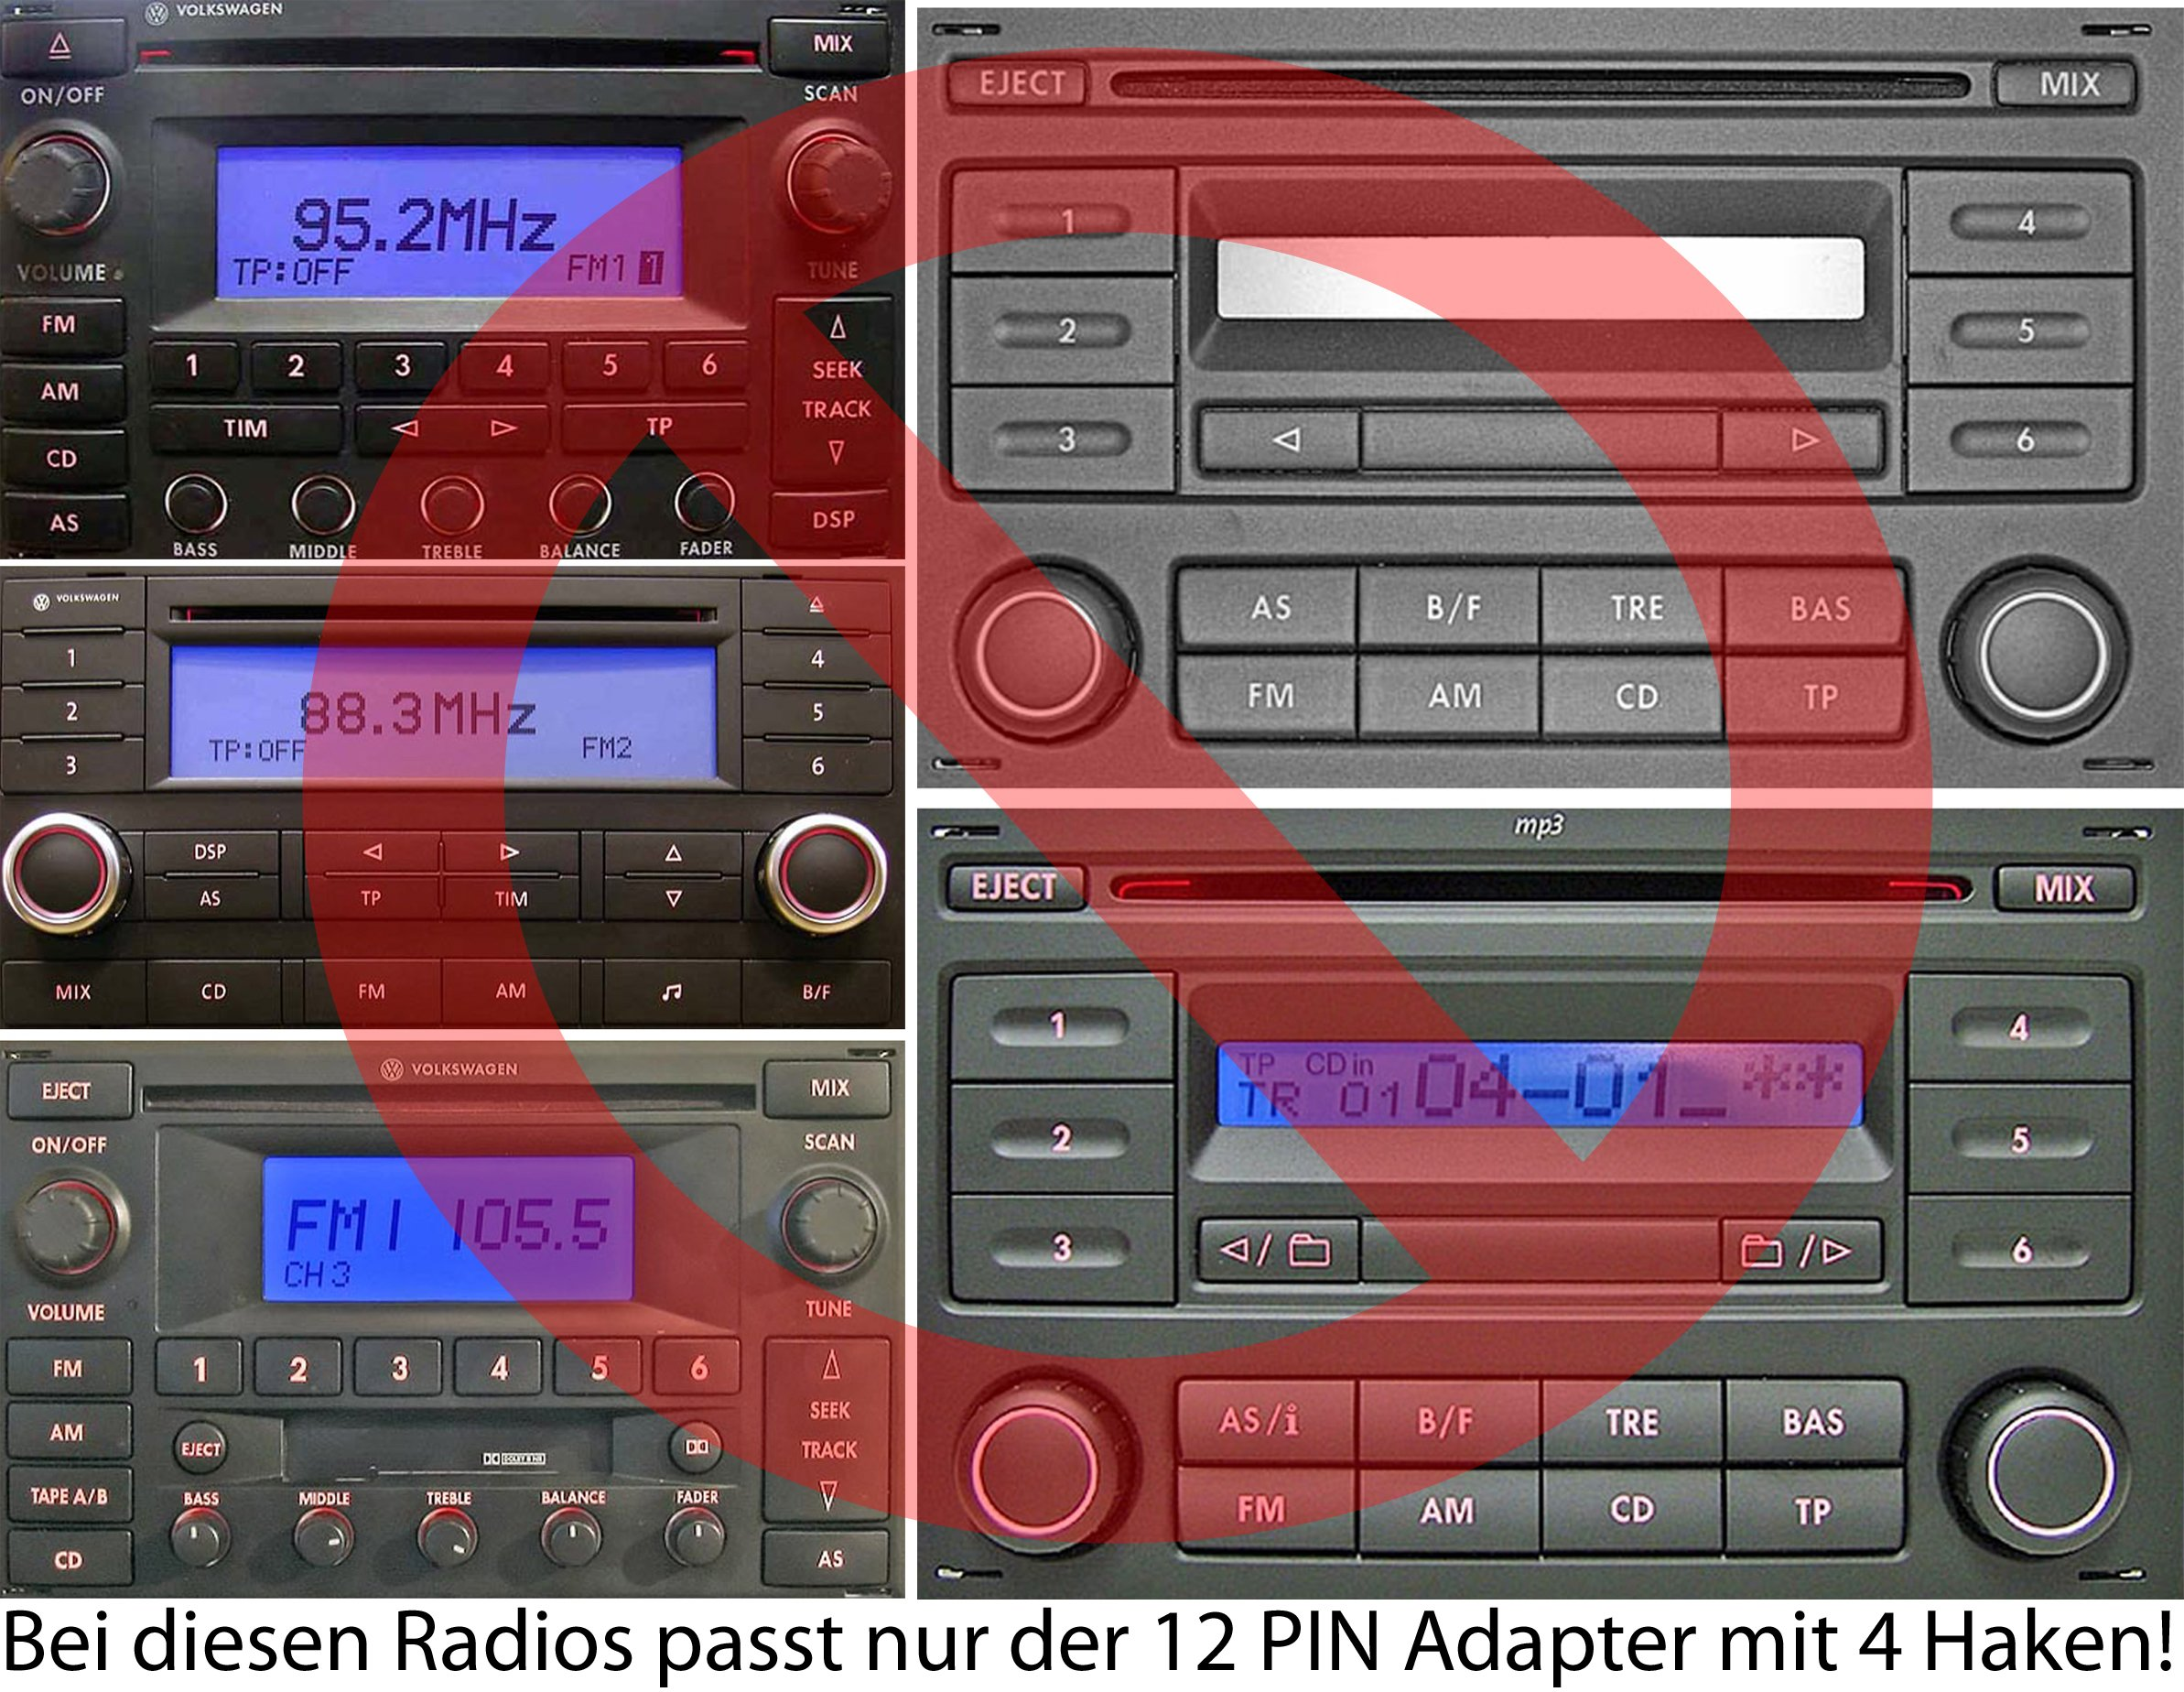 Yatour-YT-M06-VW12-Adapter-fr-USB-SD-AUX-fr-VW-Audi-Seat-und-Skoda-12-Pin-Autoradio-CD-Wechsler-MP3-Player-audio